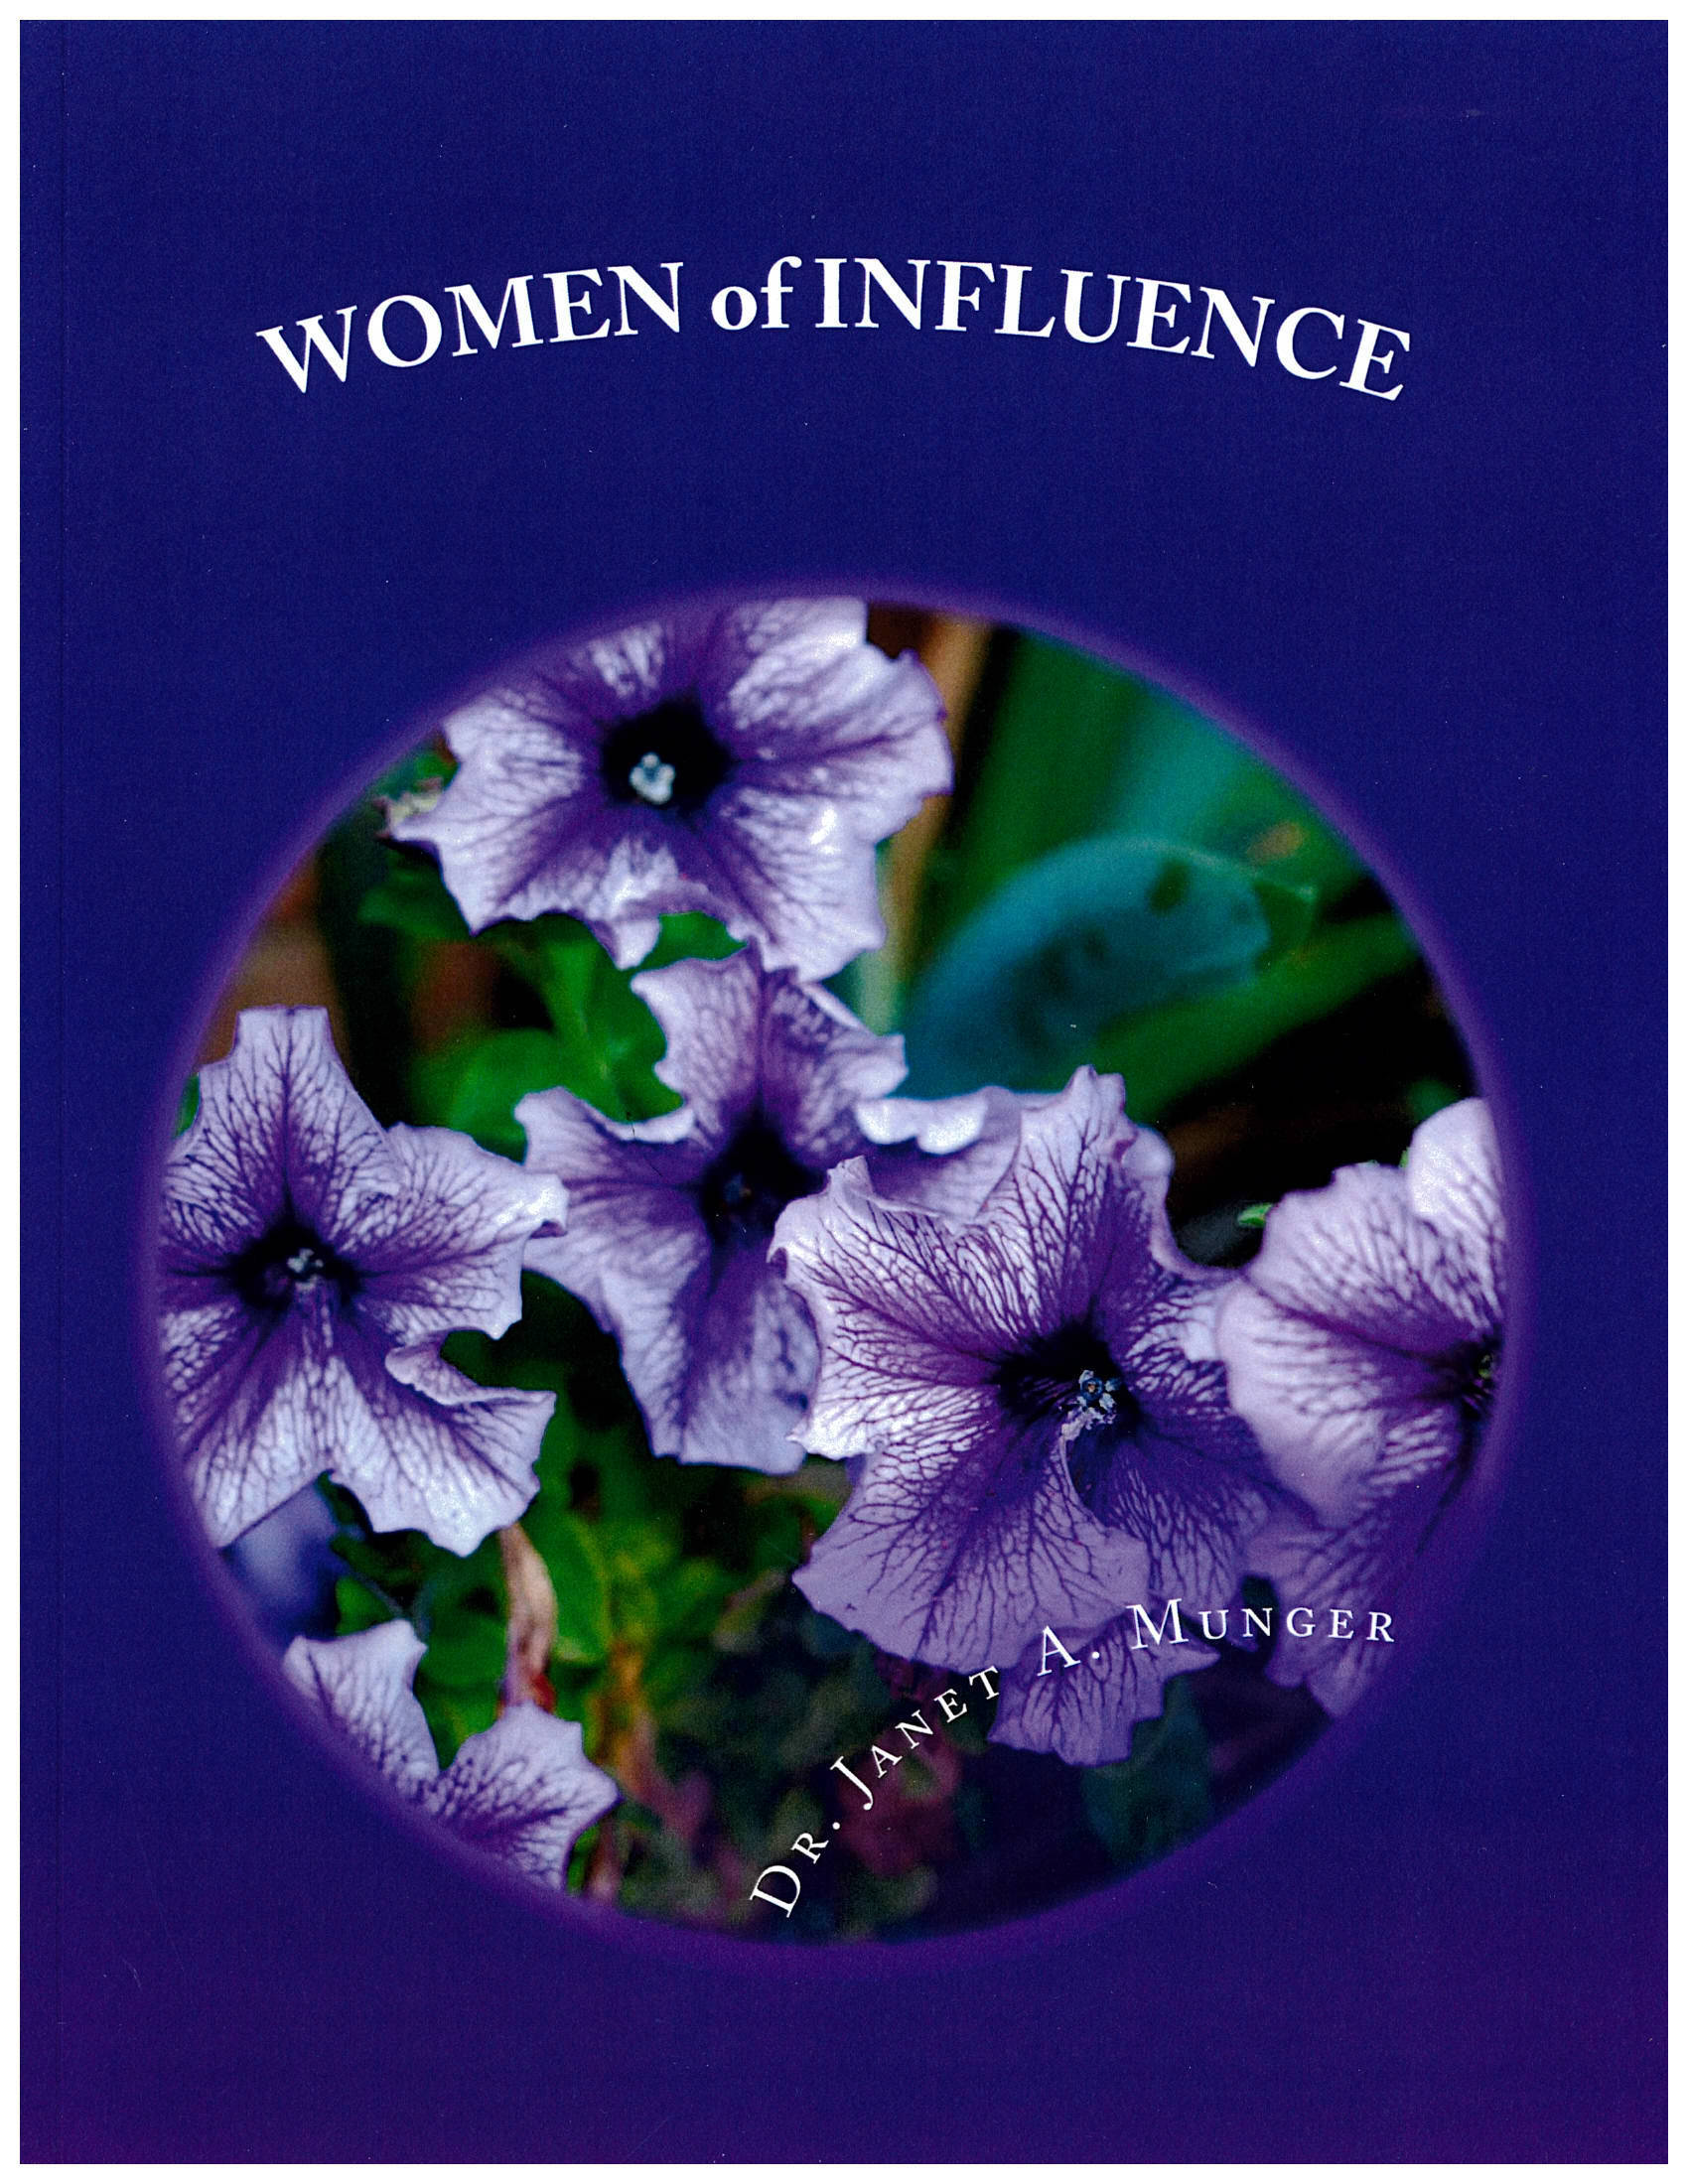 9ced969db3662e6ab290_Facebook_JPG_Reduced_Women_of_Influence_Cover_01-17-17.jpg